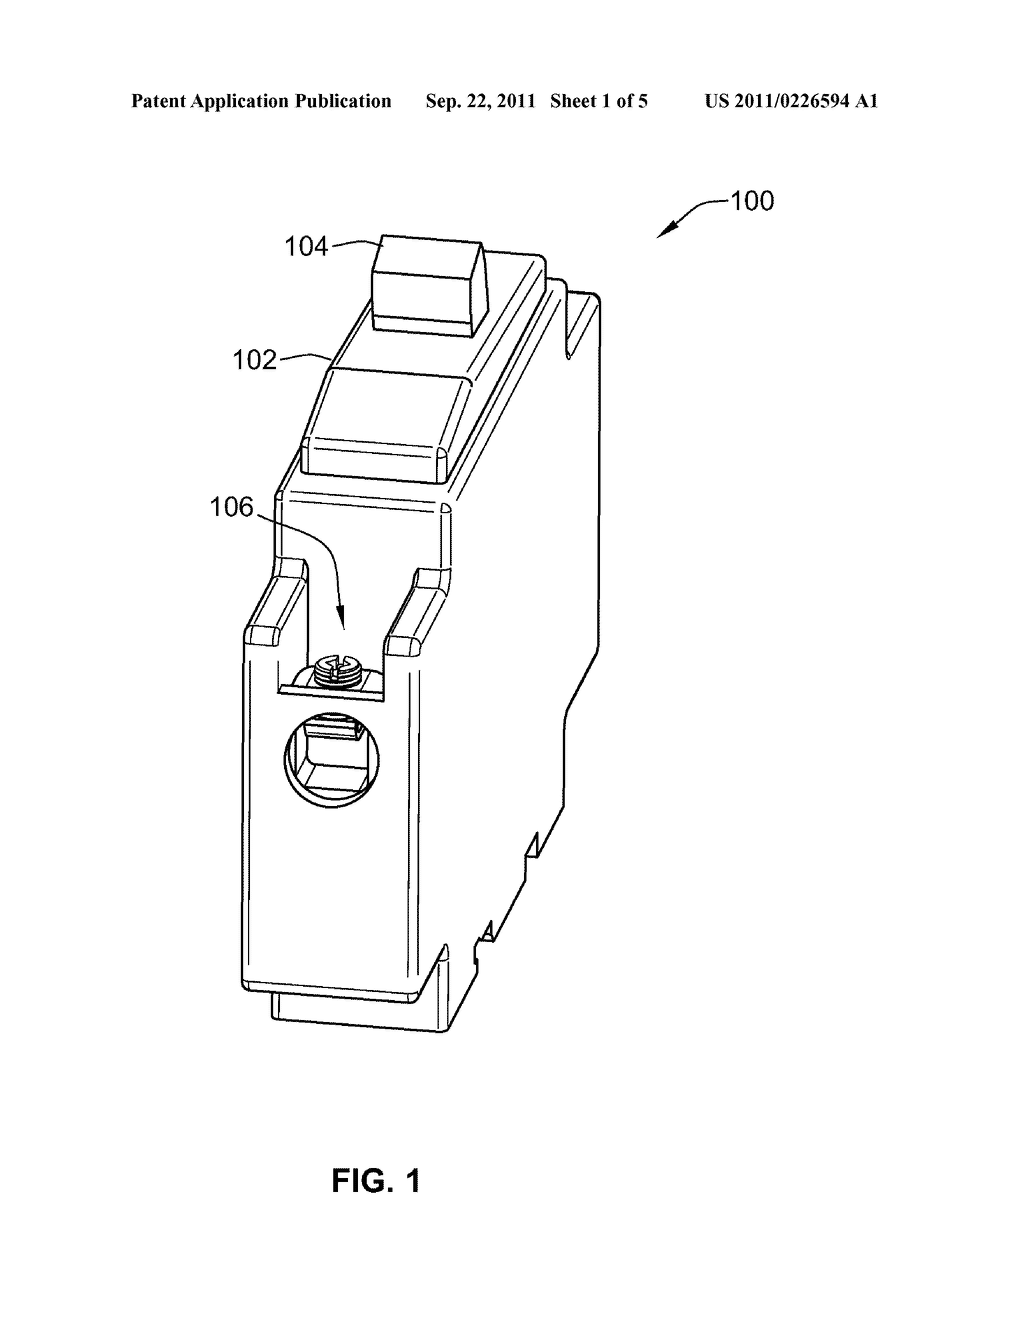 ressettable electronic fuse circuit breaker circuit for securing